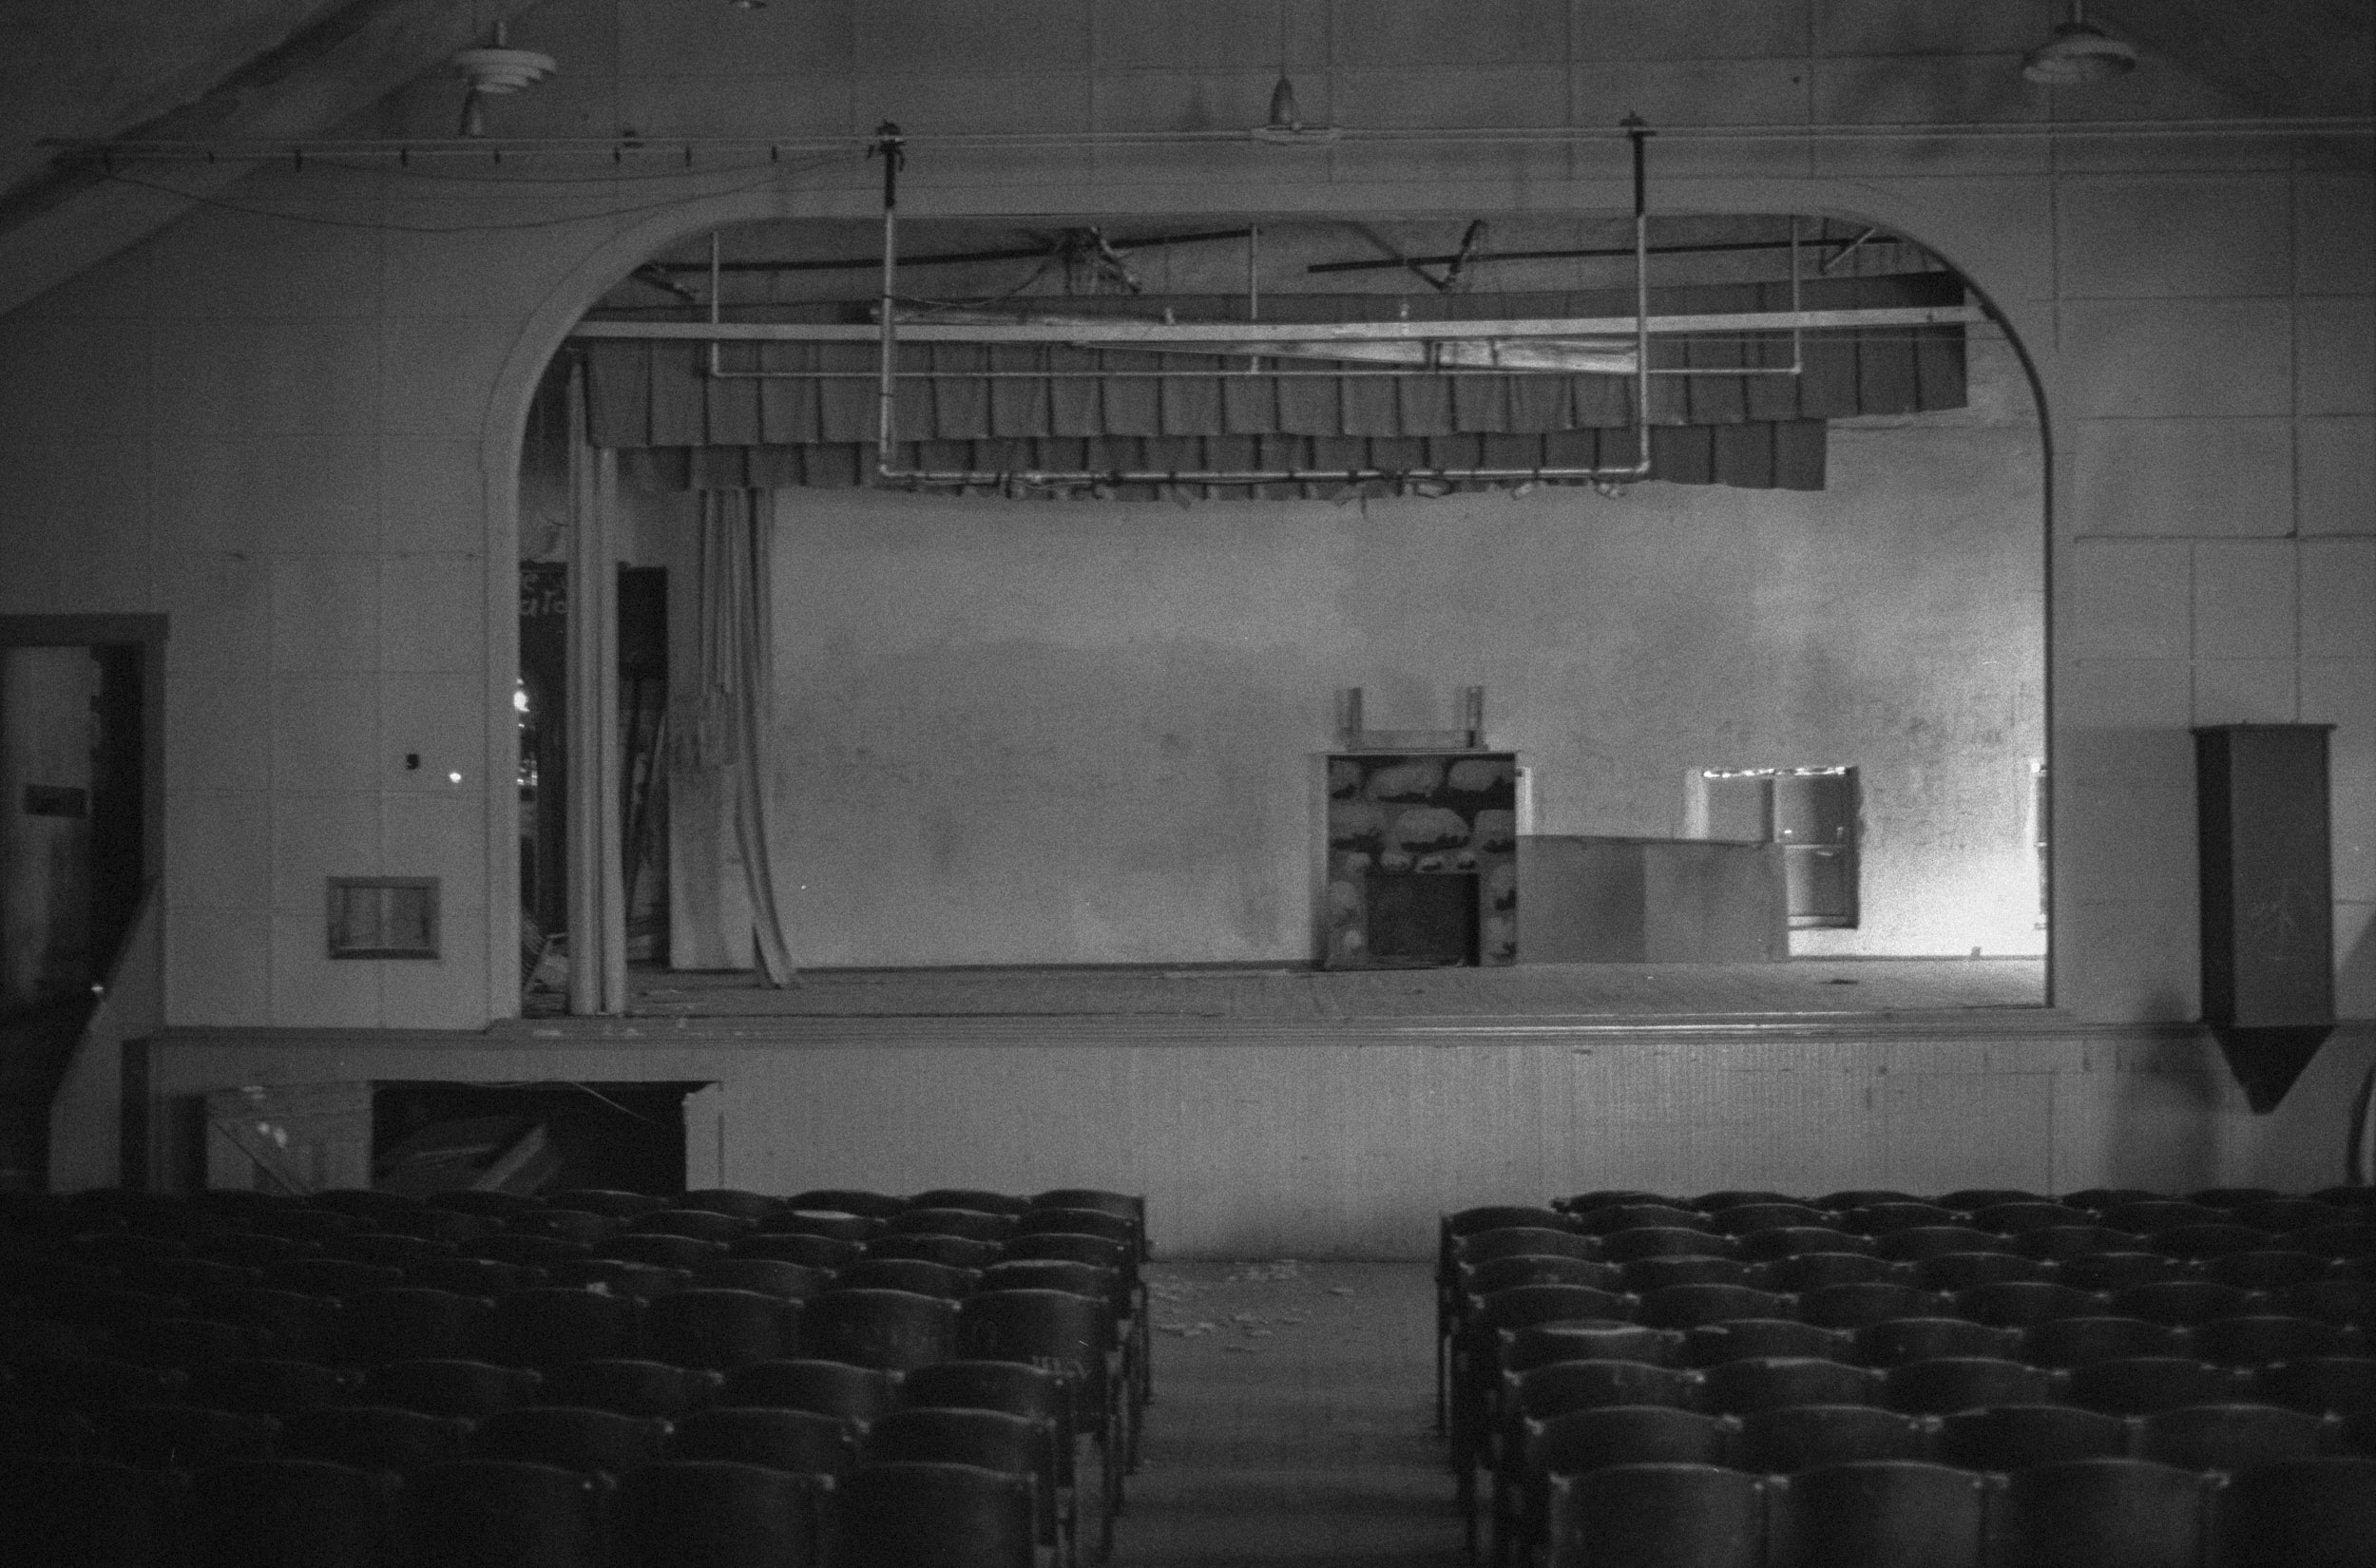 James Dean's High School Theater, Fairmount, IN 1990 The starting place for Dean's Acting Career.